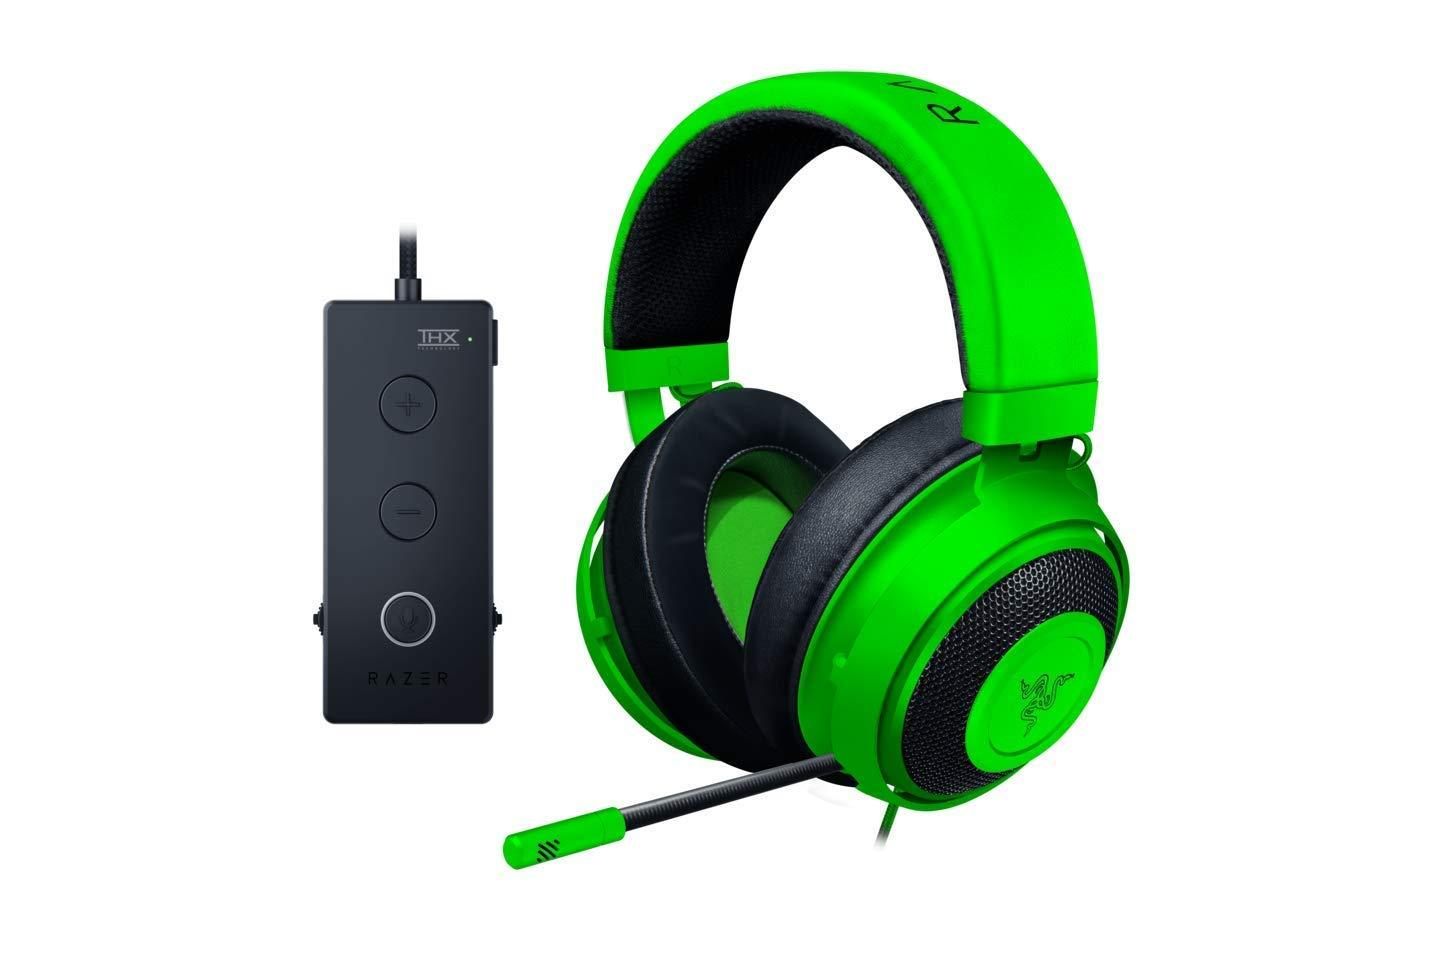 Razer Kraken Tournament Edition Wired Gaming Headset - Green